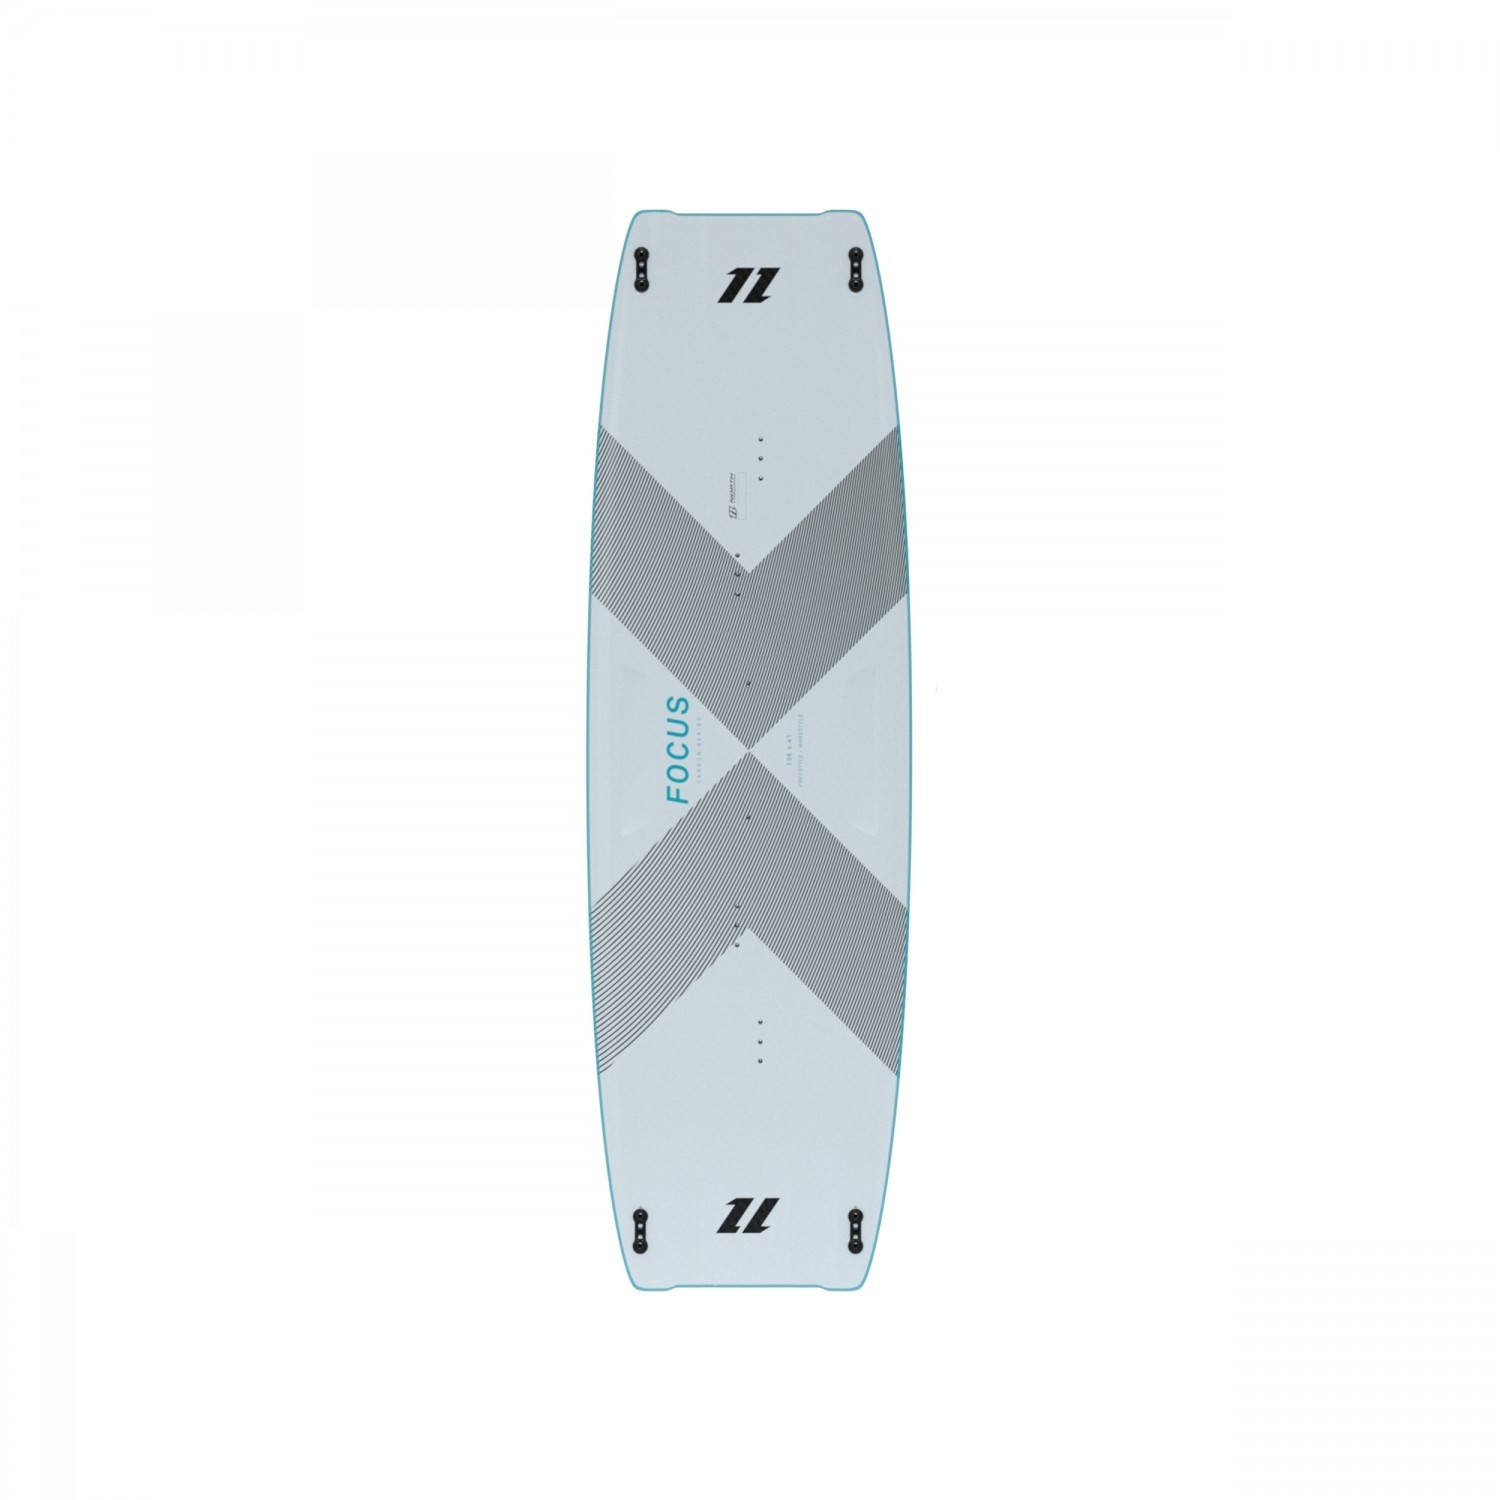 North Focus Carbon Series Twin Tip Kiteboard